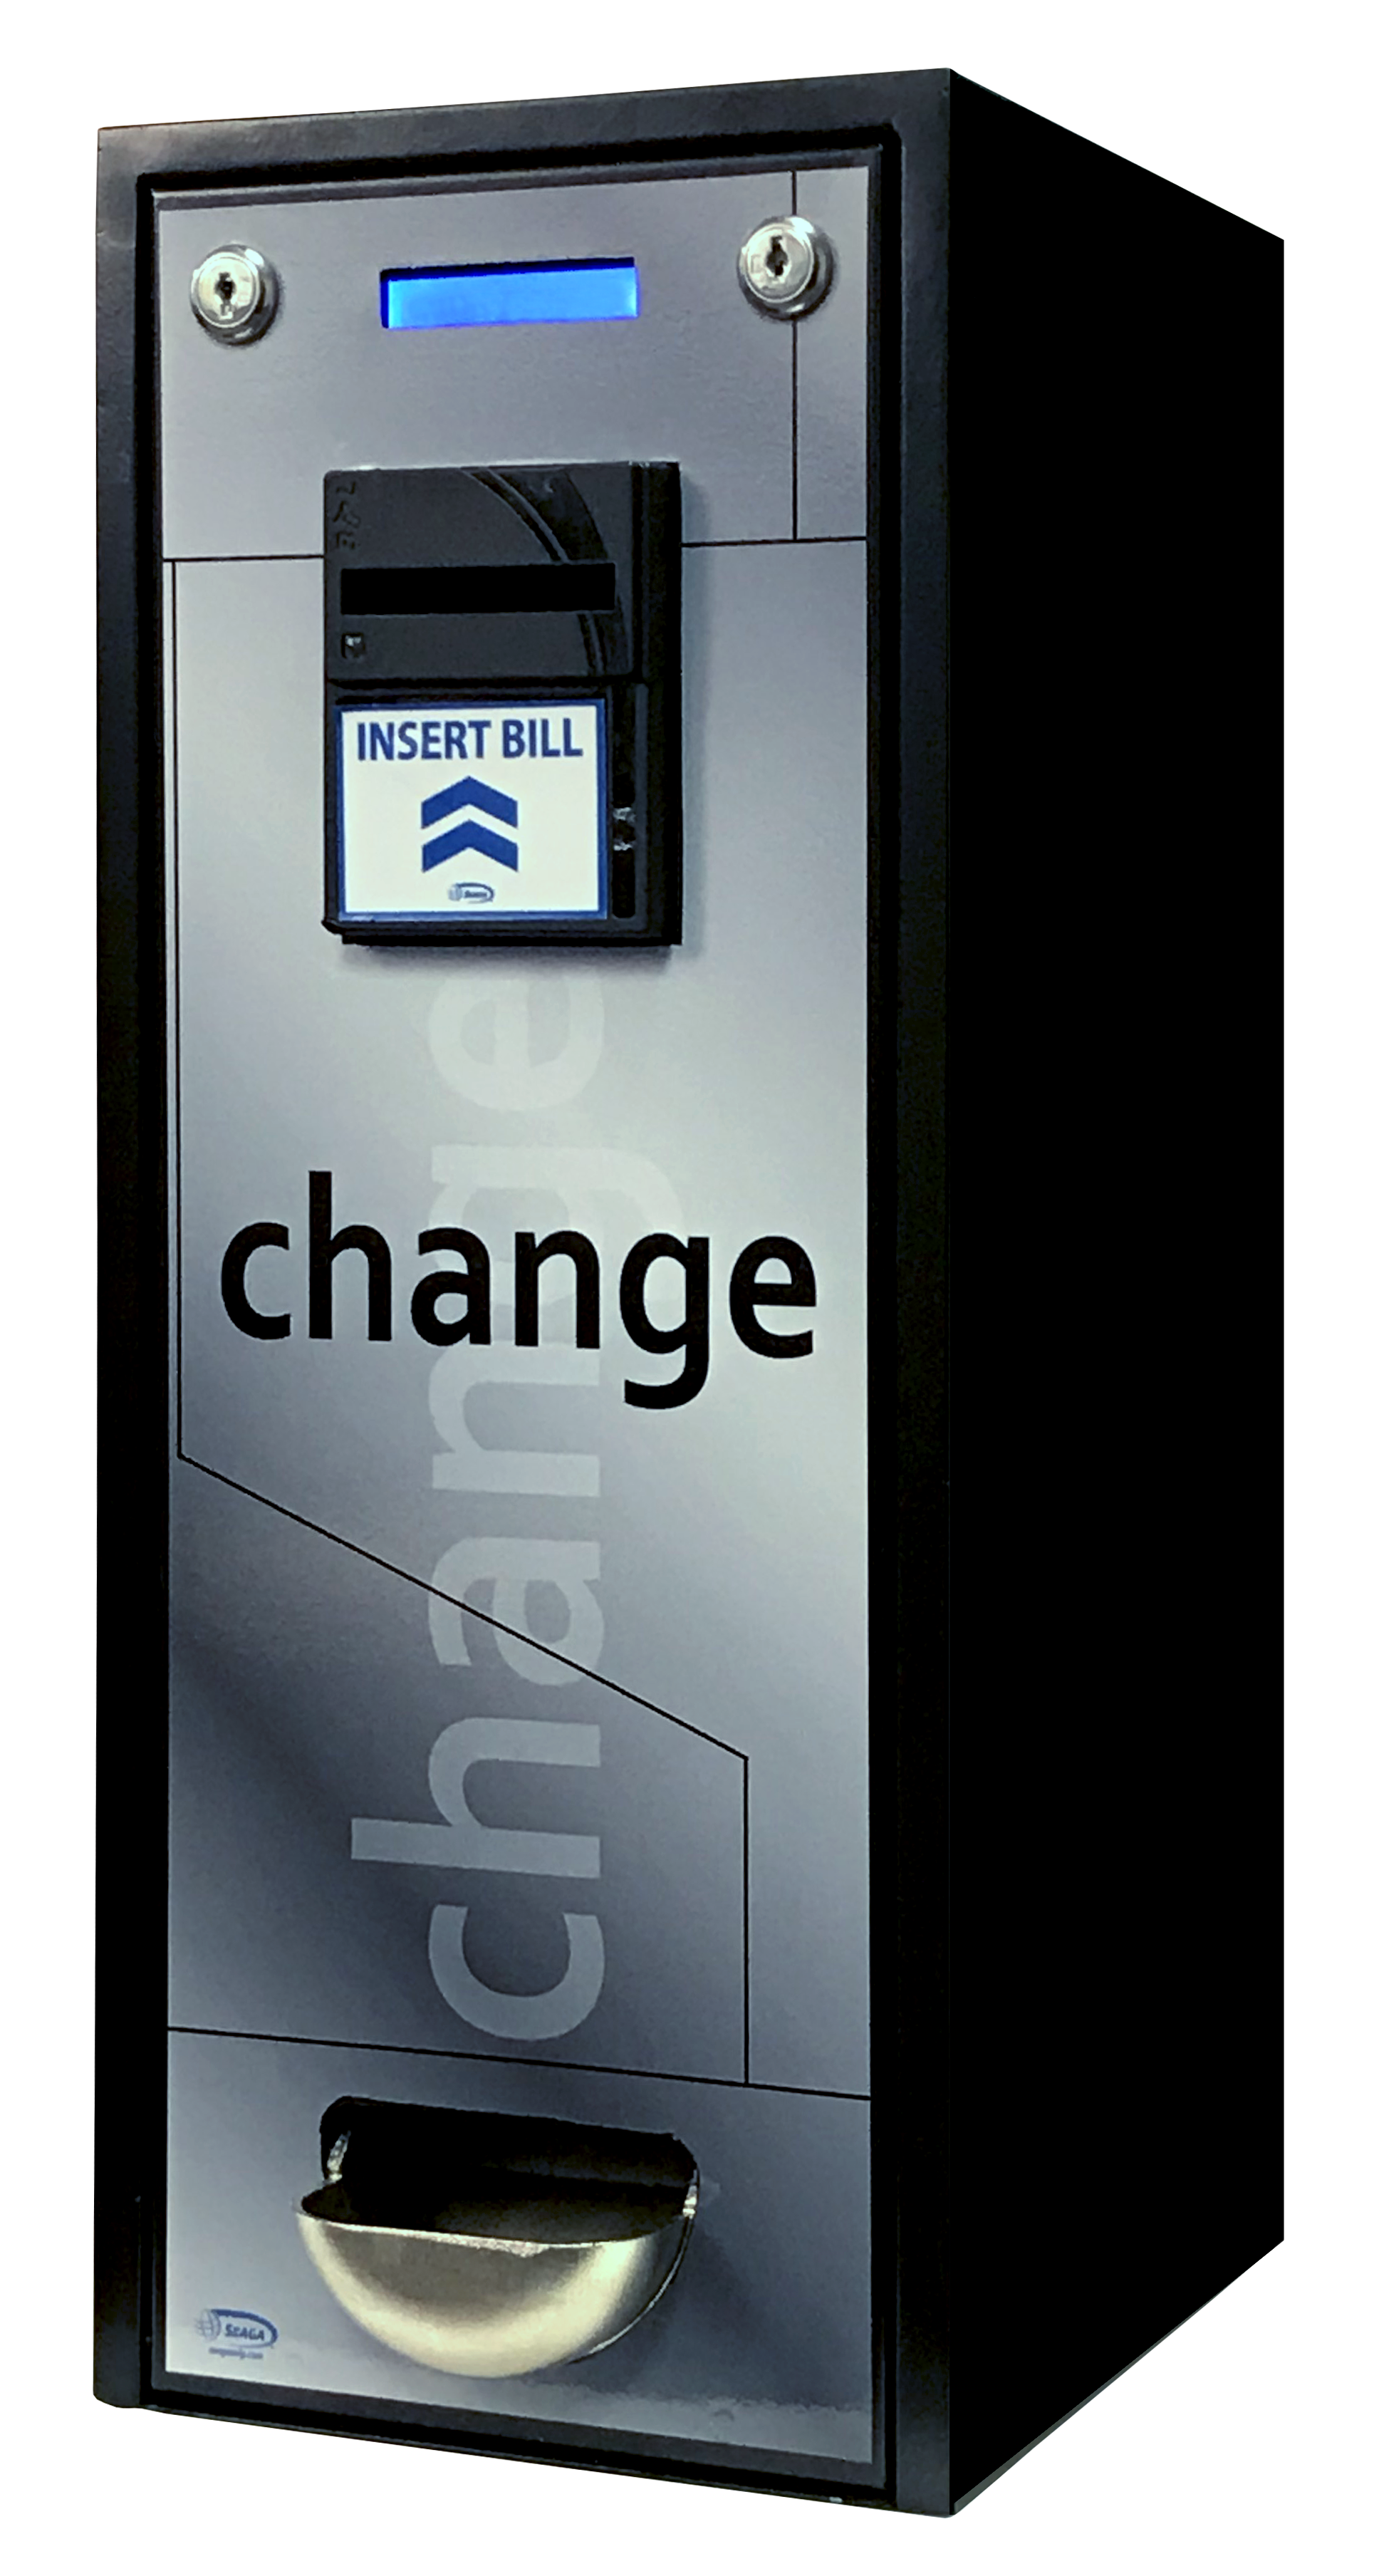 bill change machine that accepts US $1, $5, $10 and $20 and offers change in US Quarters